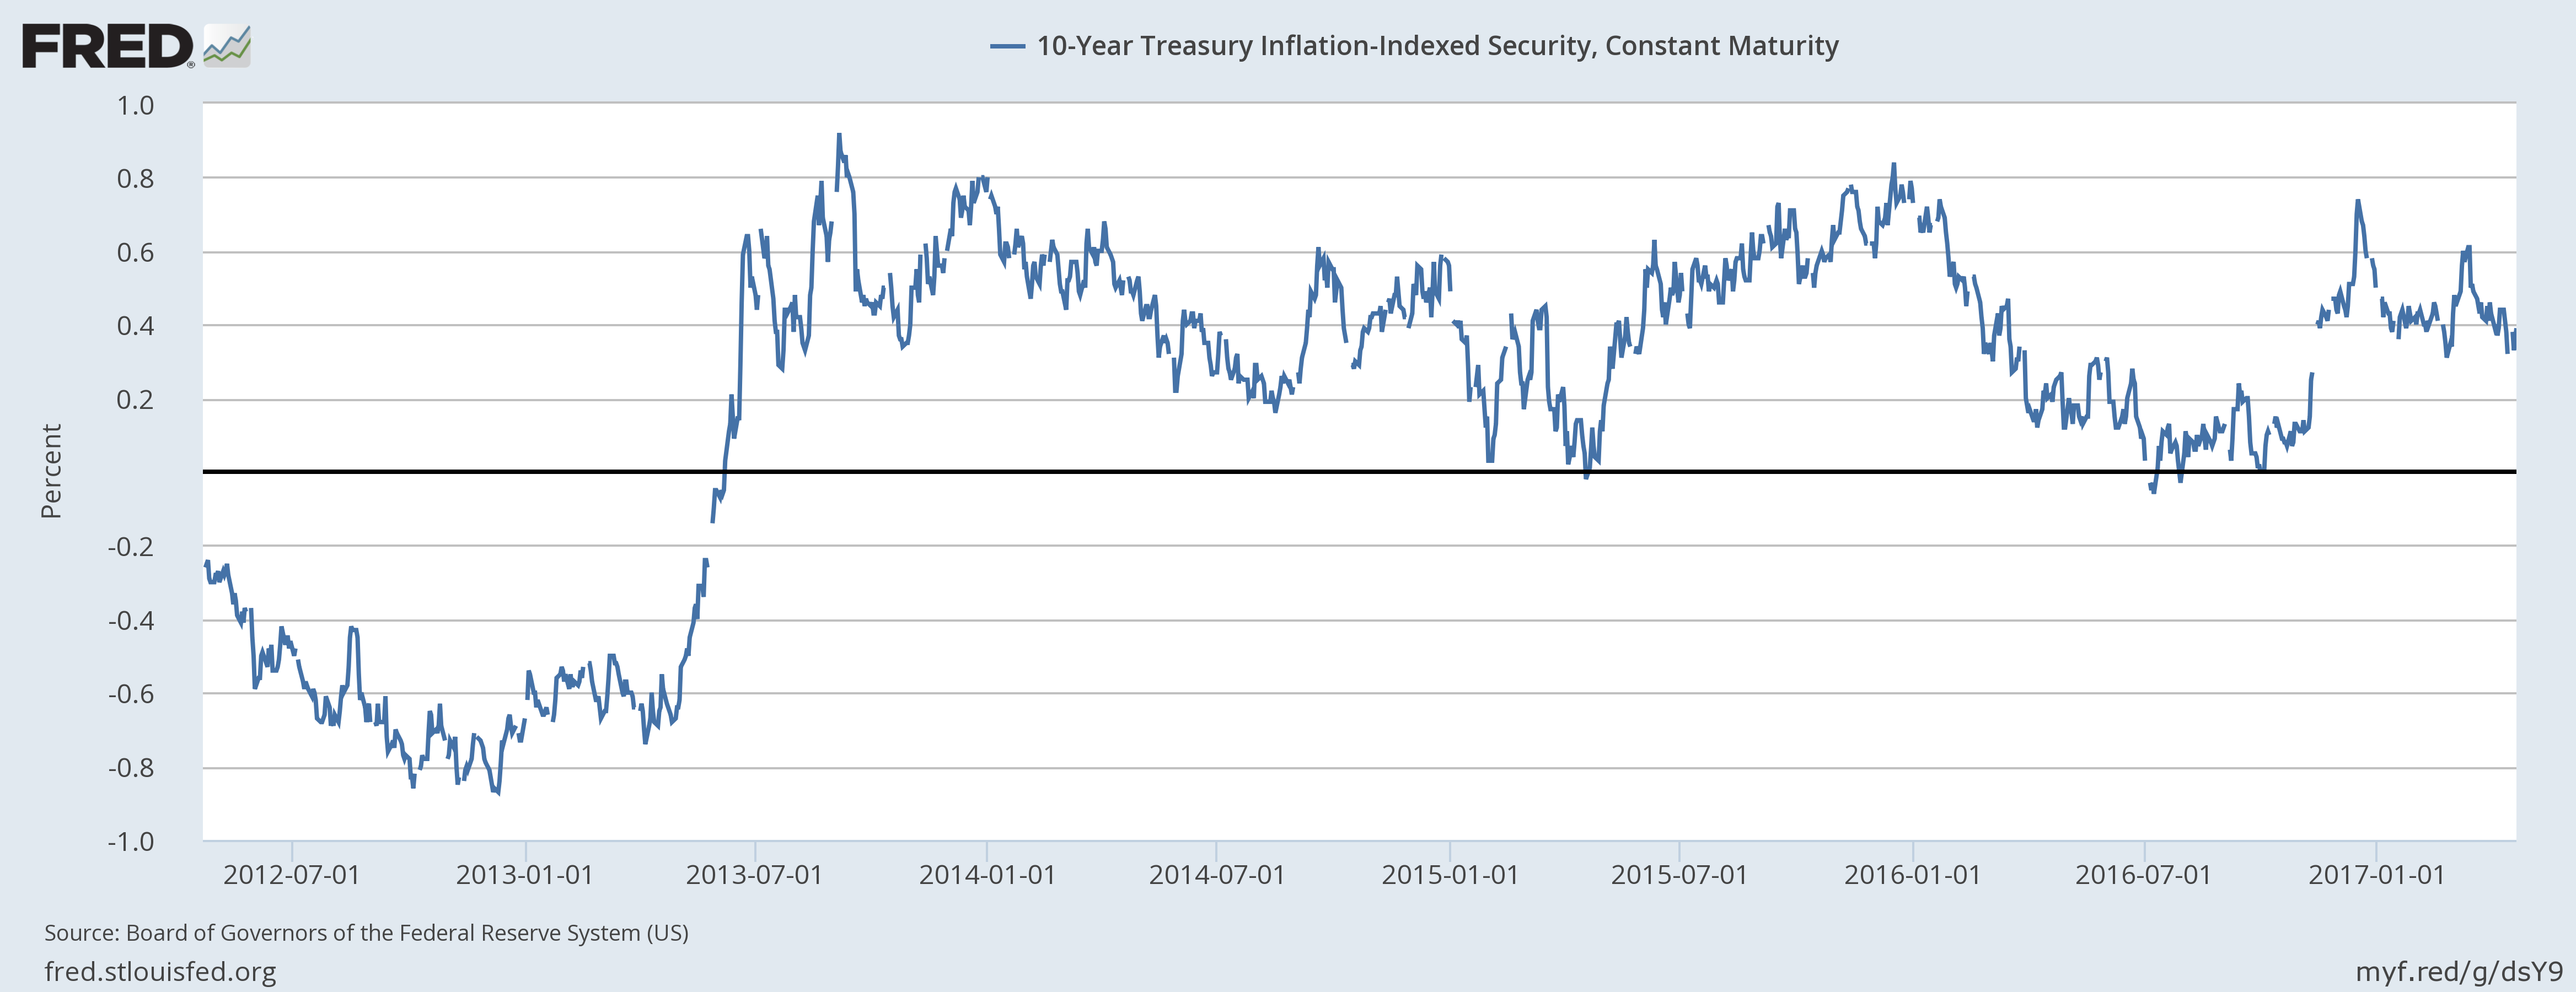 10-Year Treasury Inflation-Indexed Security, Jul 2012 - Jan 2017